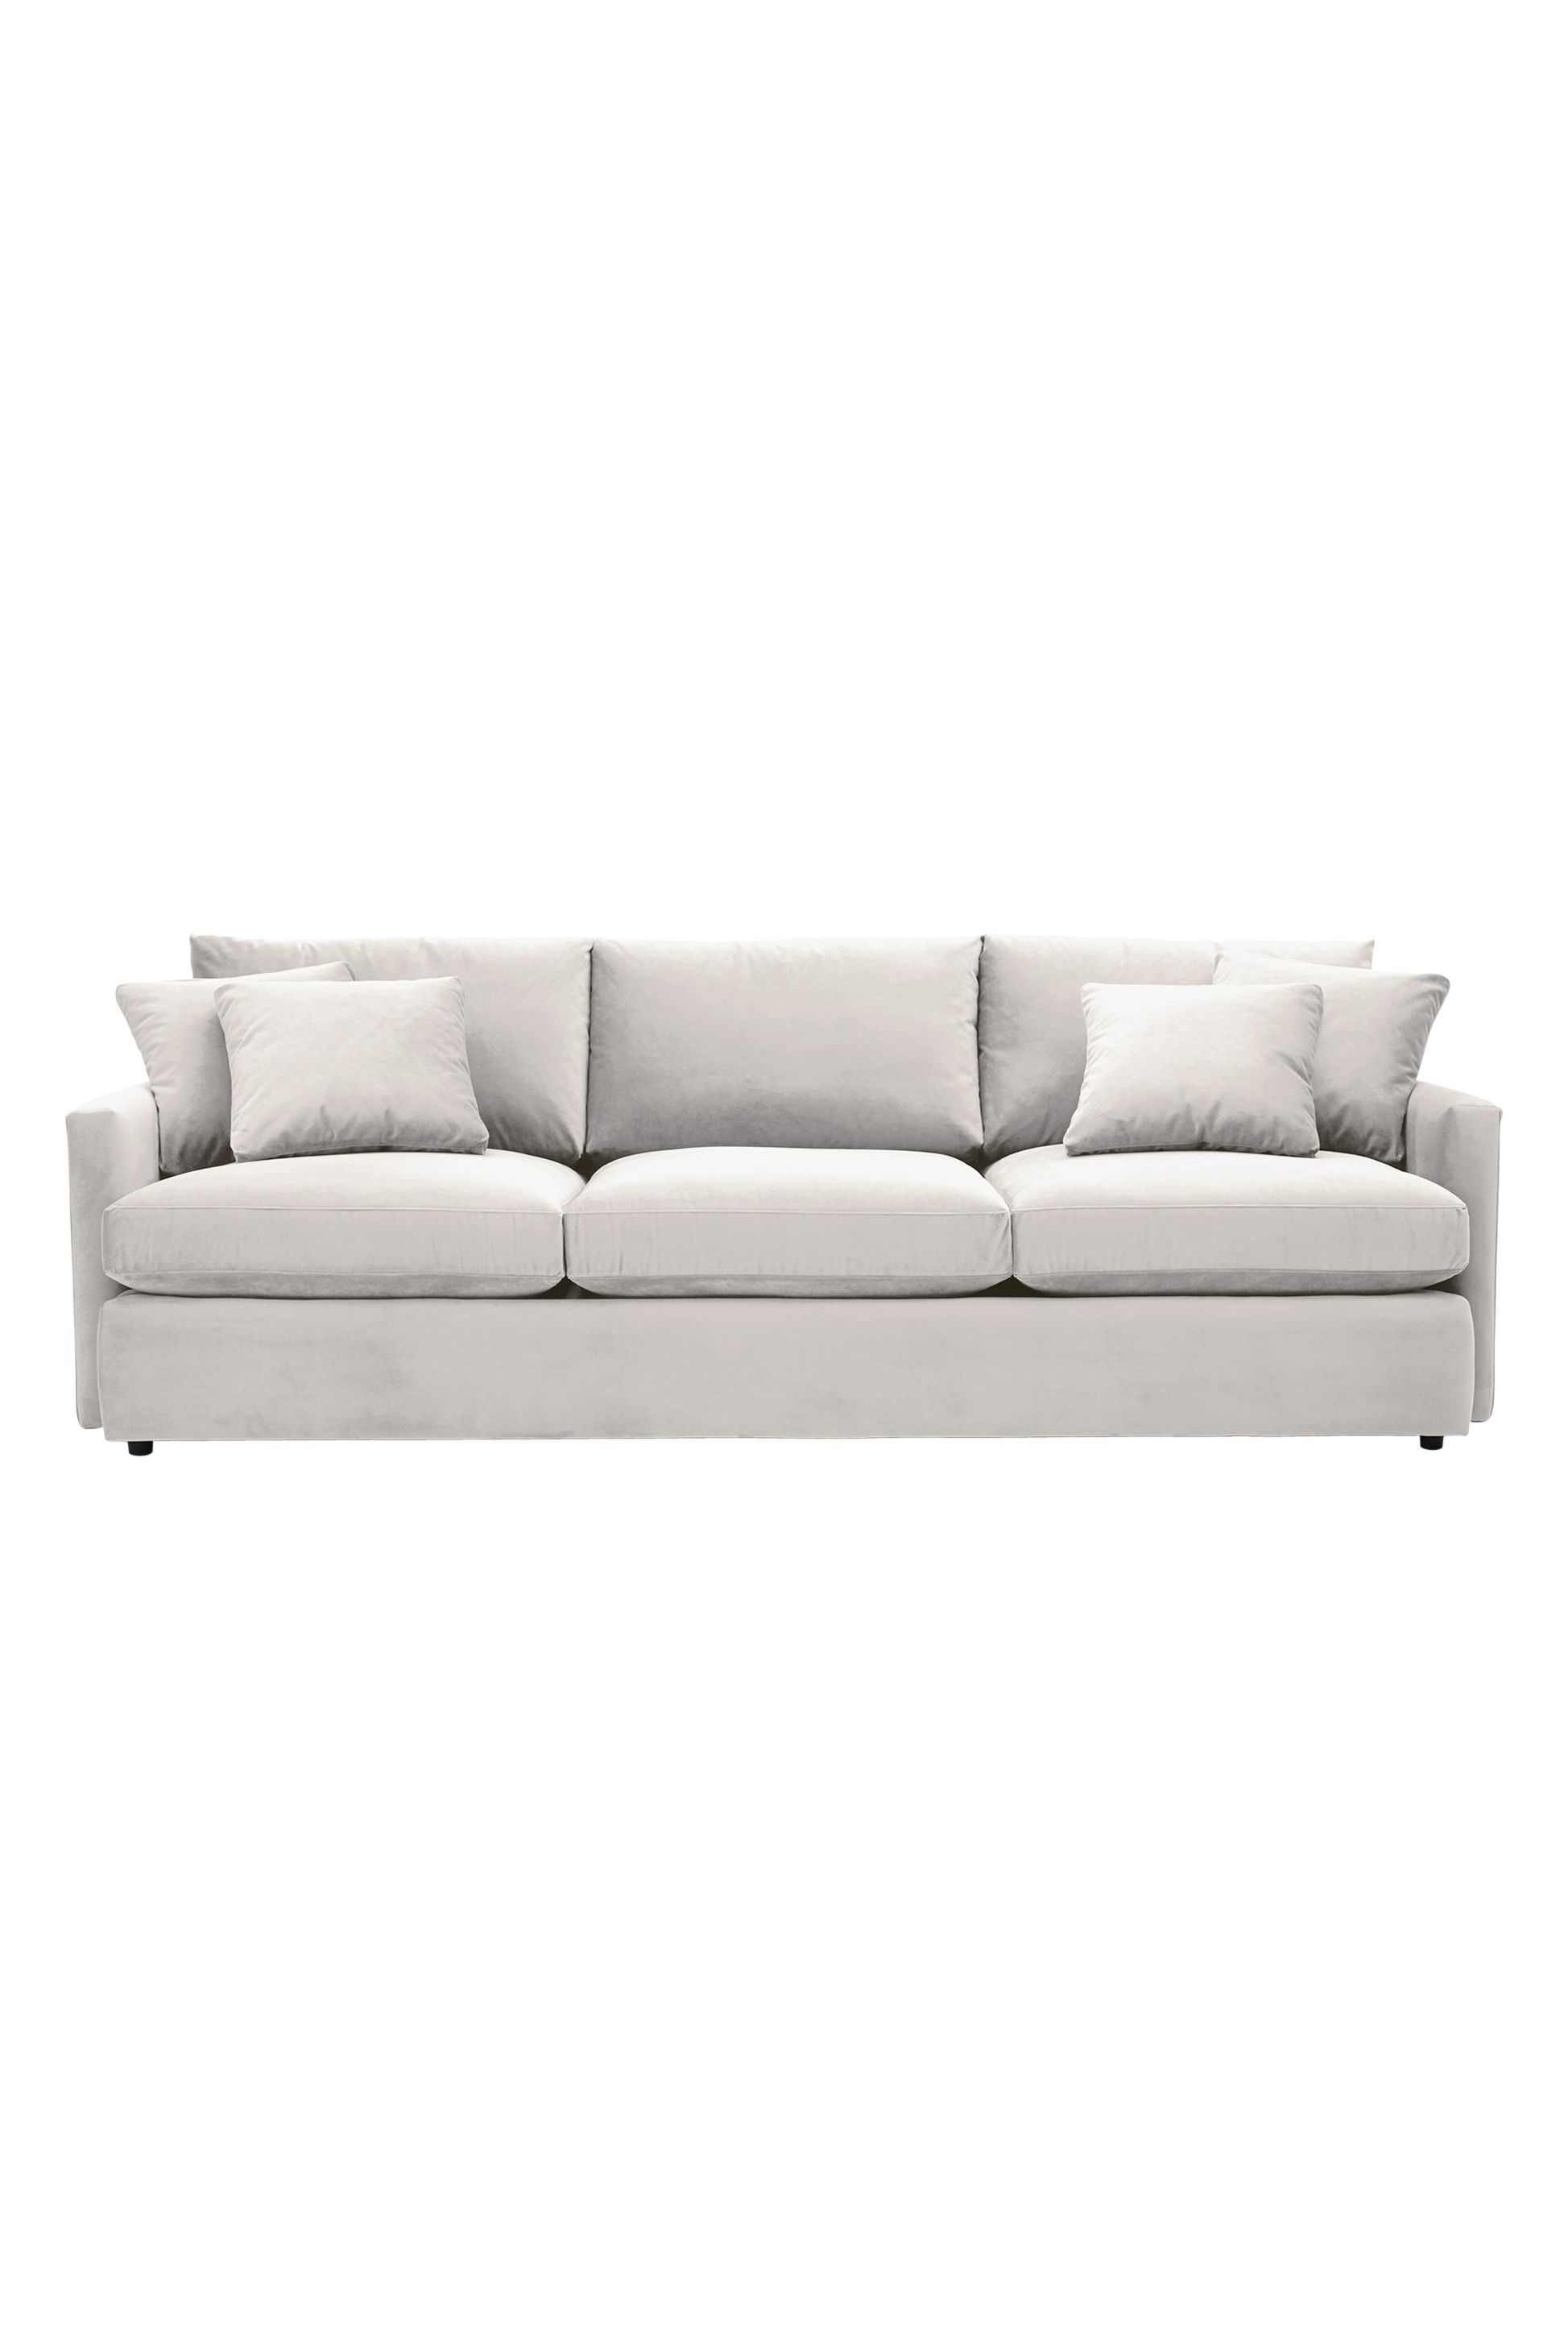 Interesting Cobble Hill Sofa With Cobble Hill Sofa